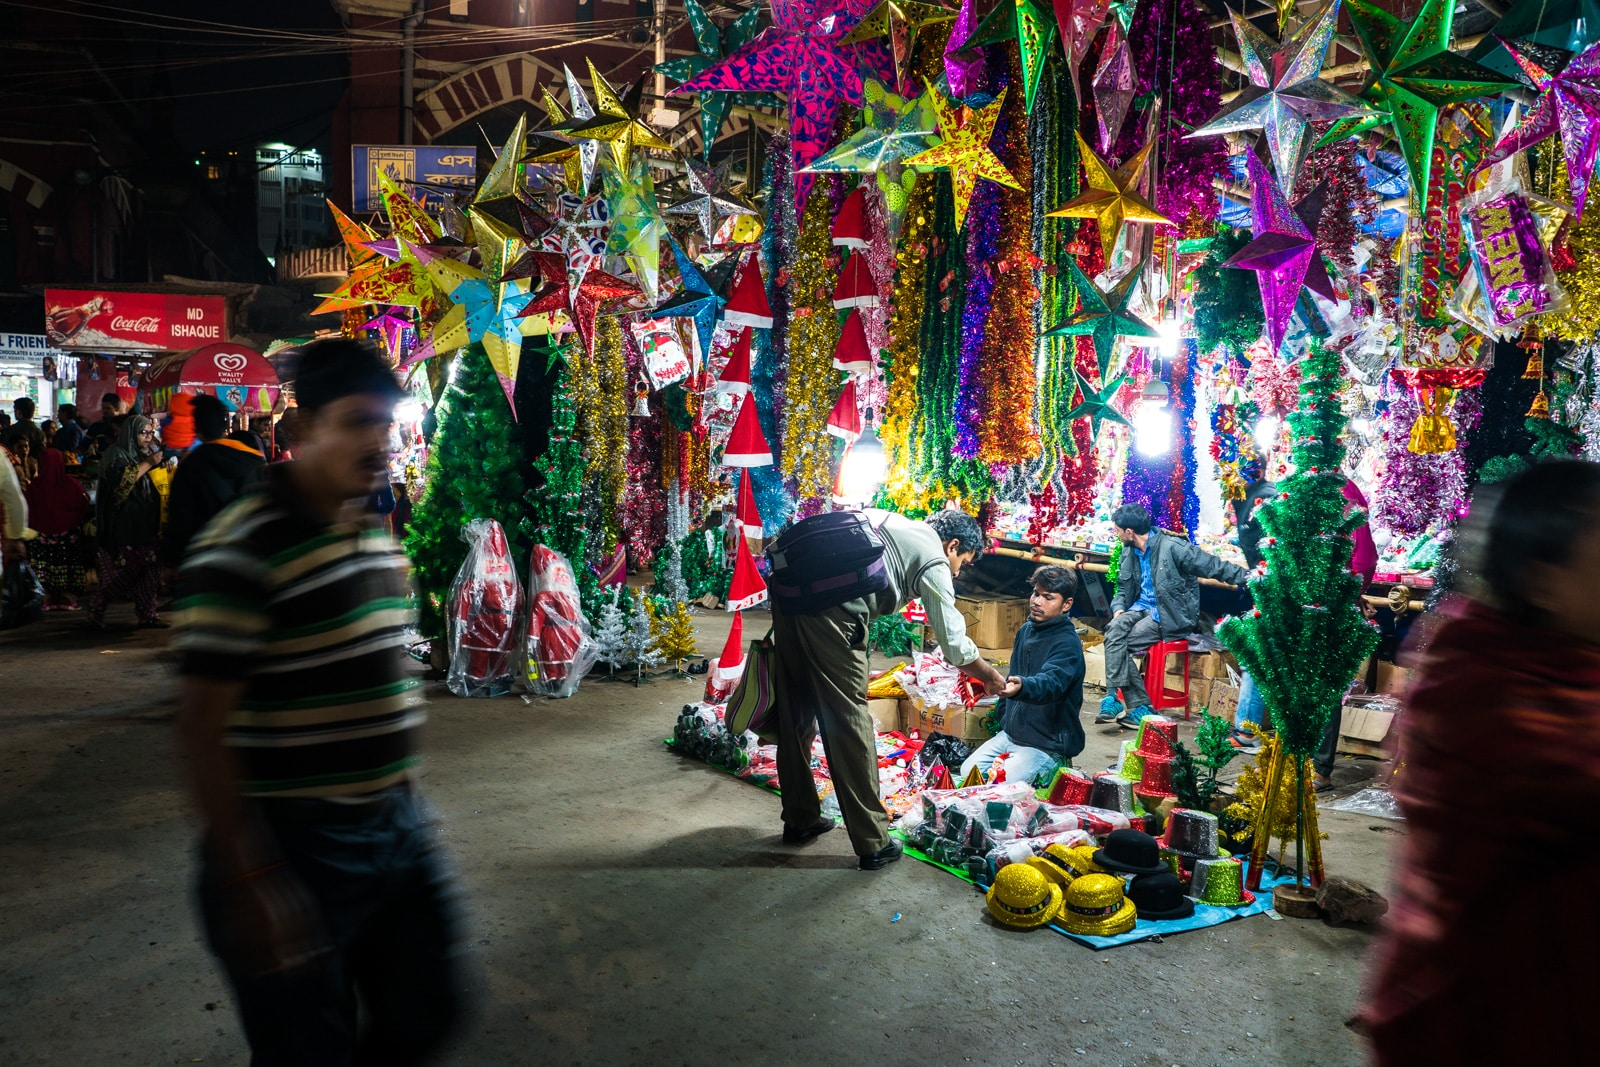 Christmas in Kolkata, India - Man selling Christmas decorations in New Market - Lost With Purpose Travel Blog